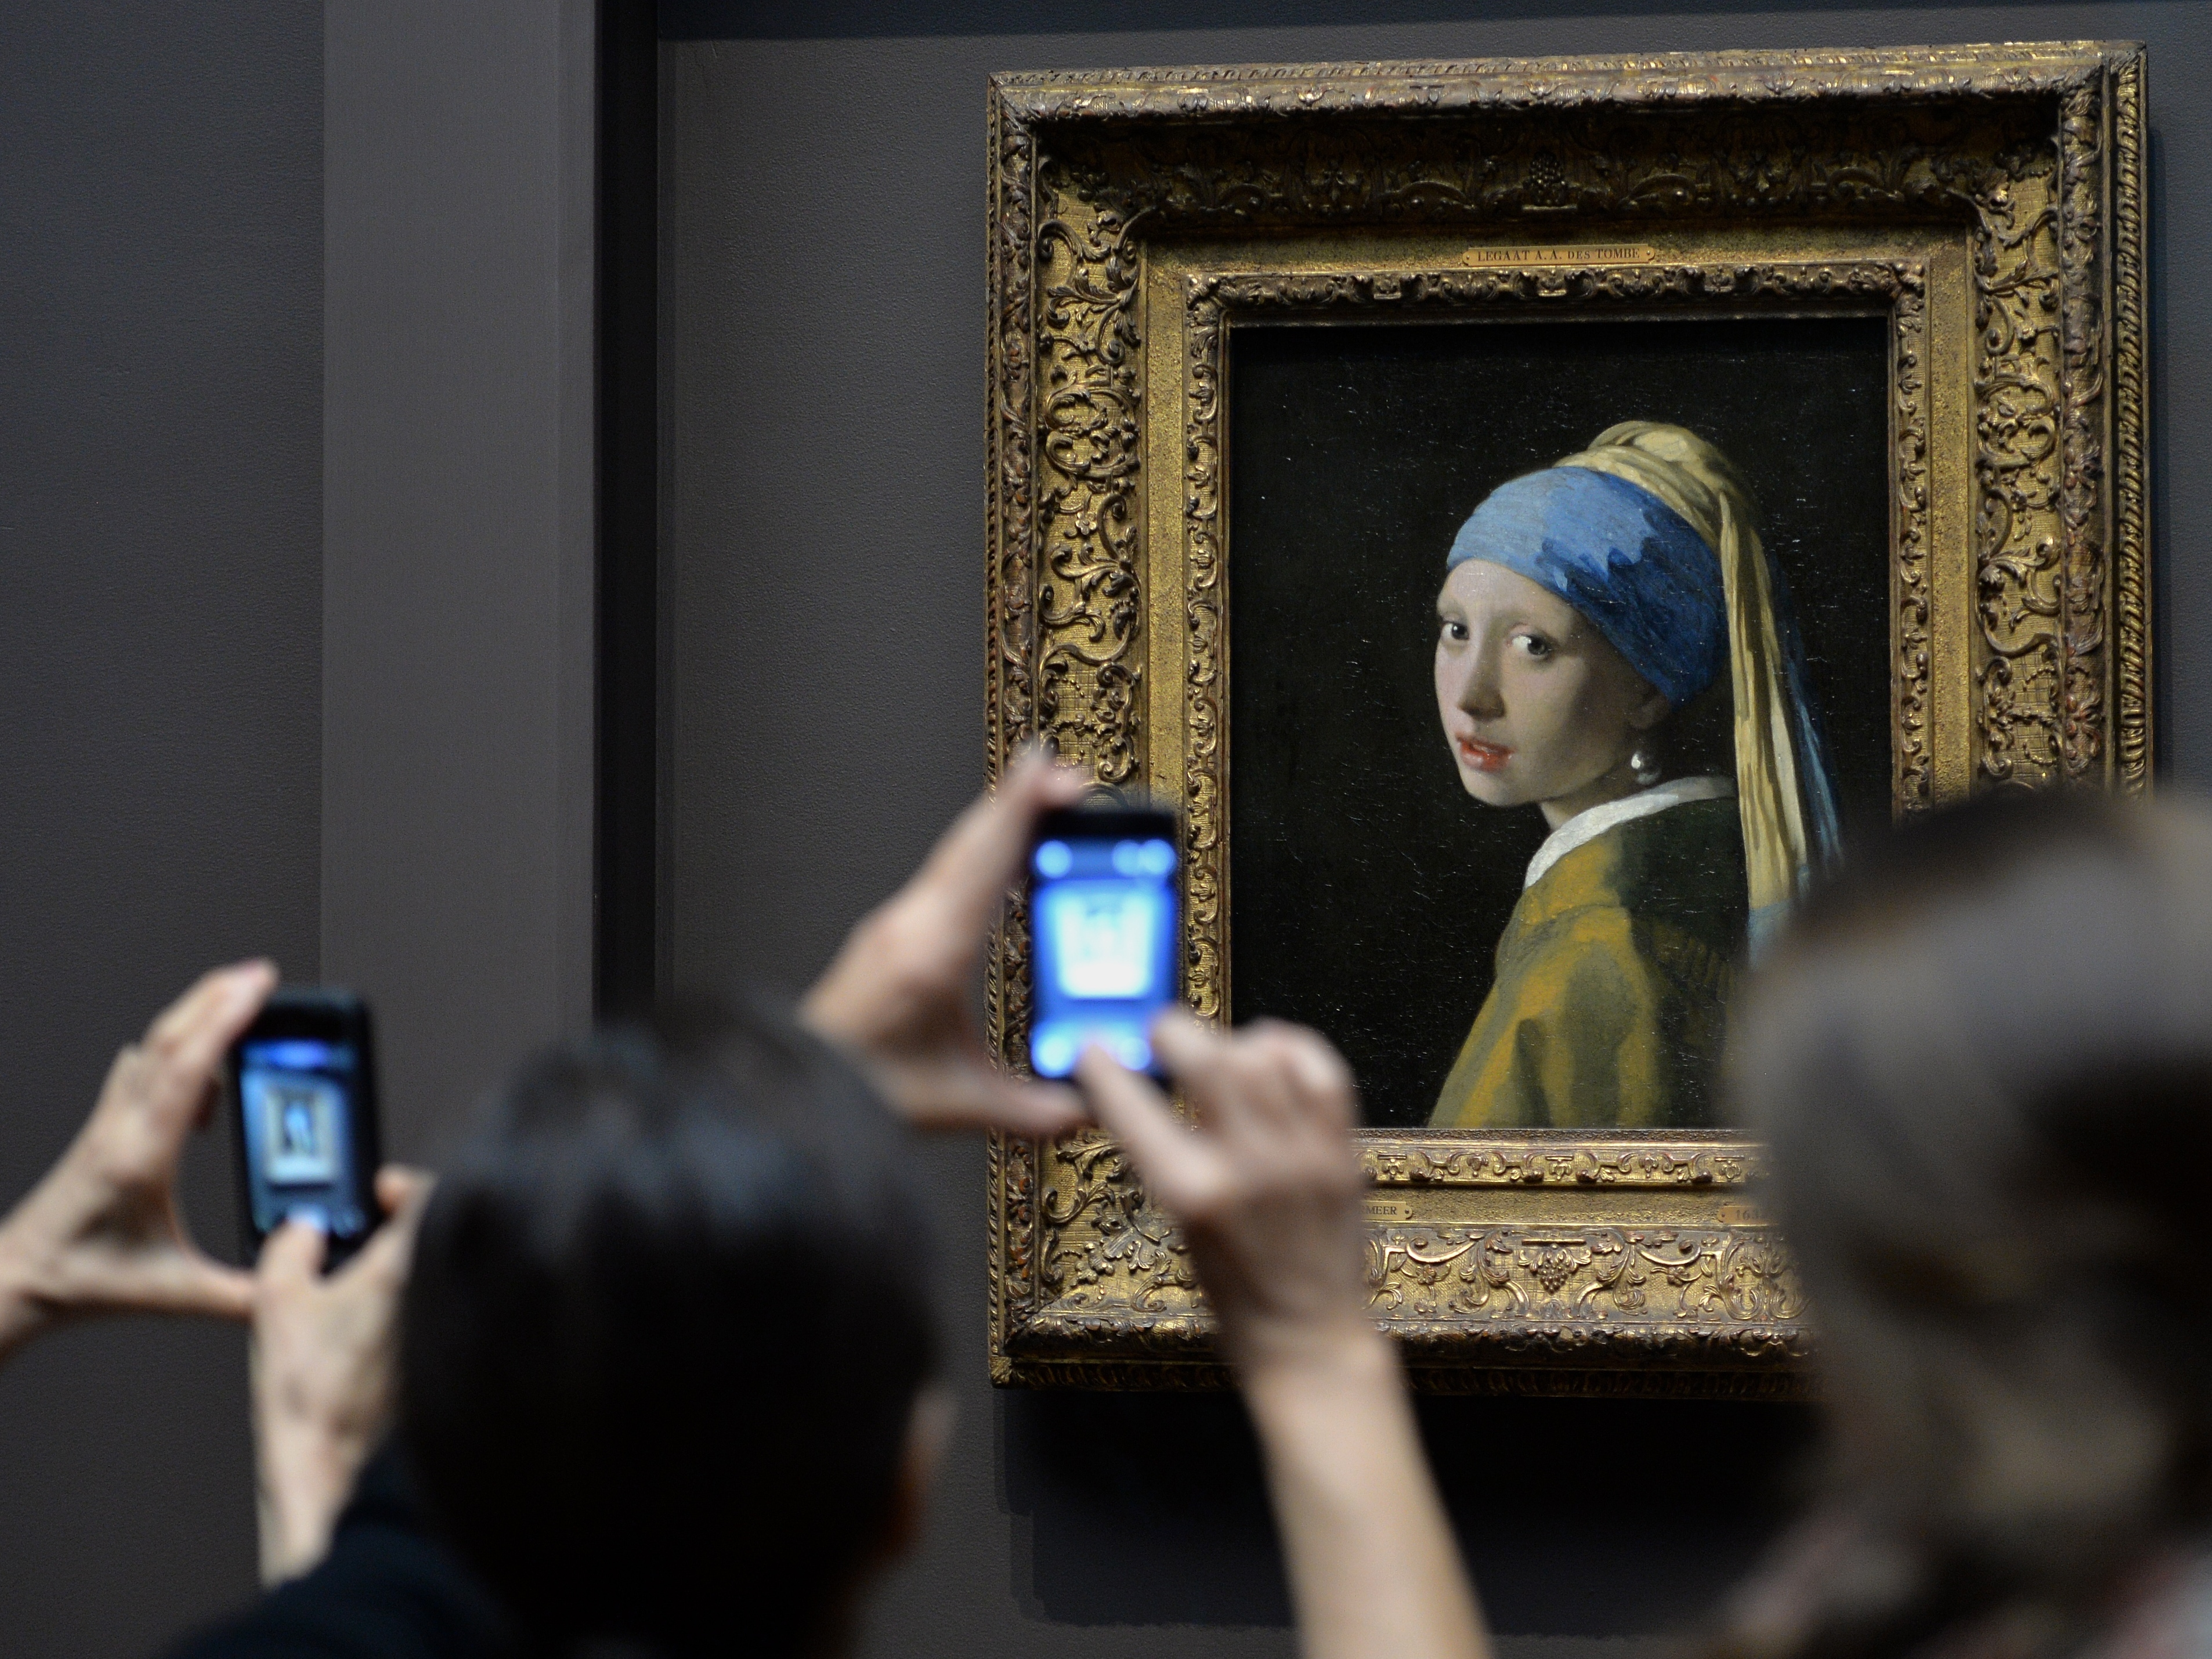 People Love Art Museums — But Has The Art Itself Become Irrelevant?